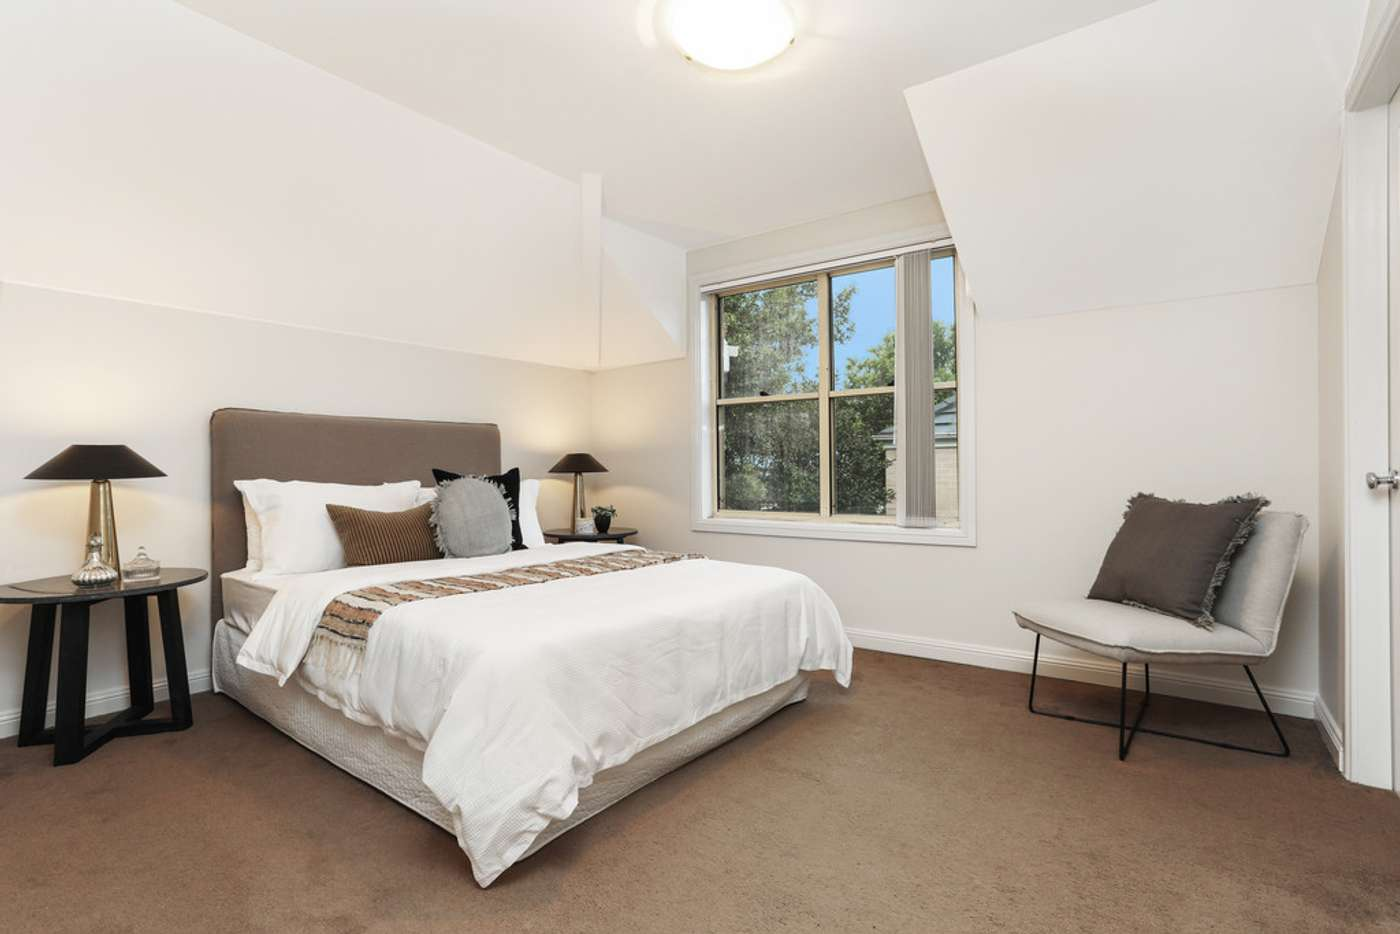 Sixth view of Homely townhouse listing, 1/39-41 Macauley Street, Leichhardt NSW 2040